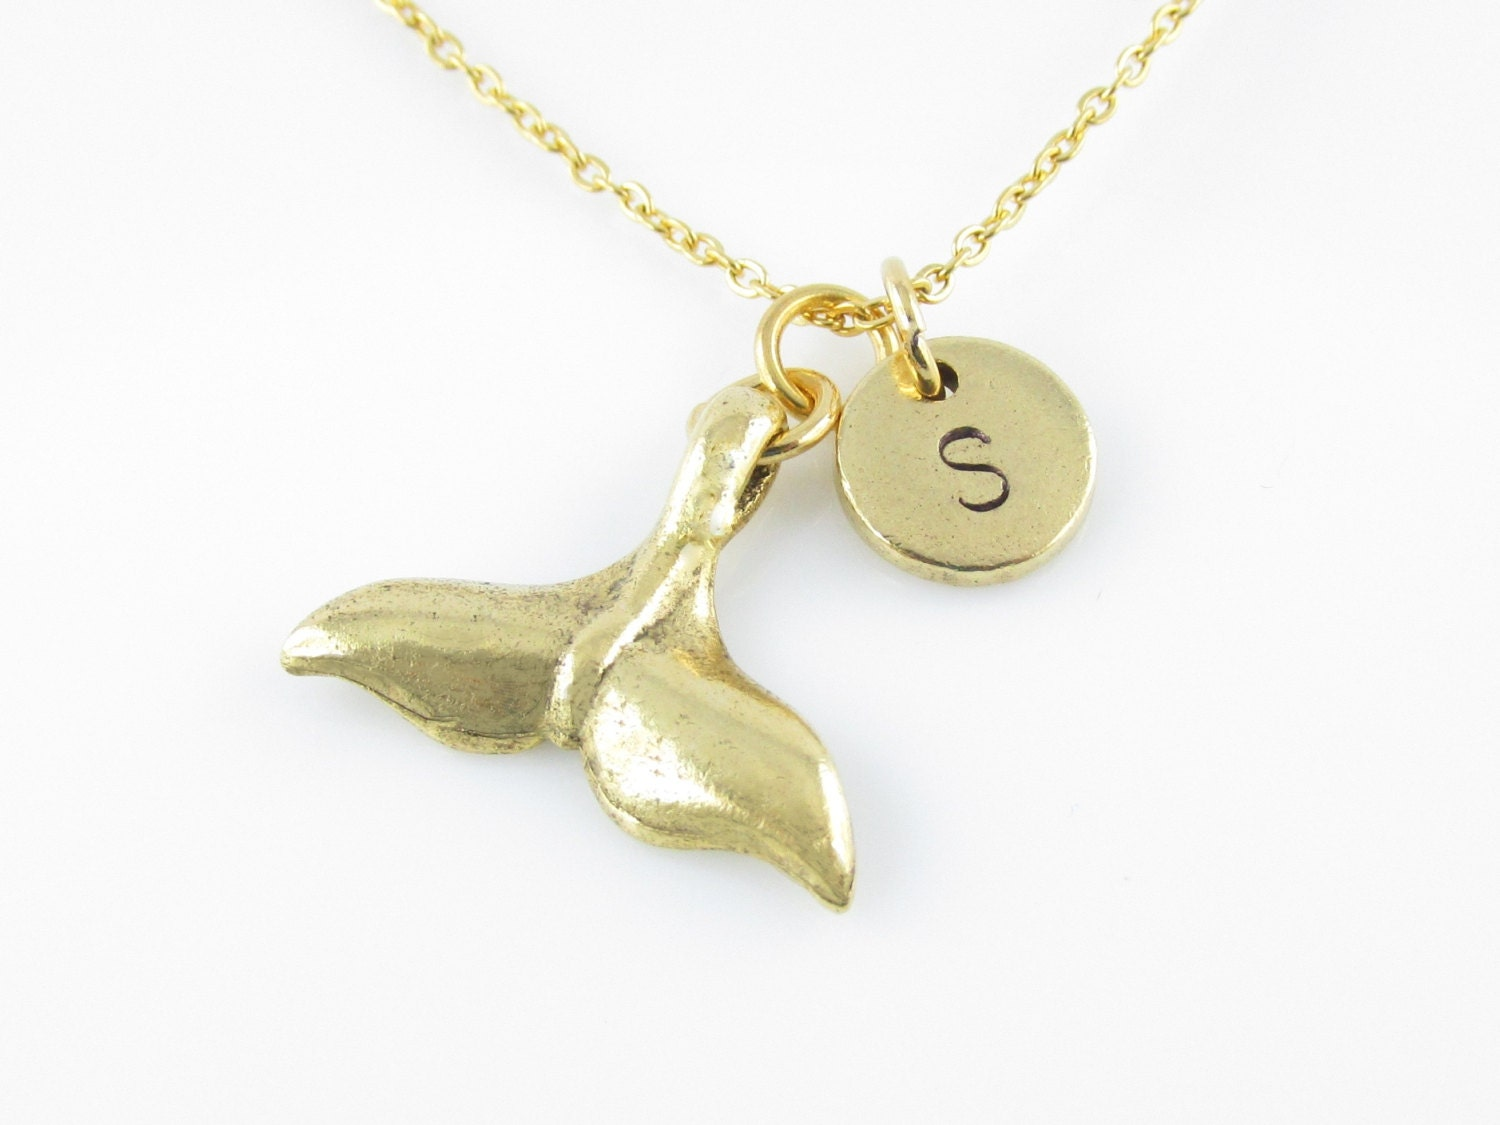 Mermaid Tail Necklace Gold Mermaid Tail Charm Whale Tail